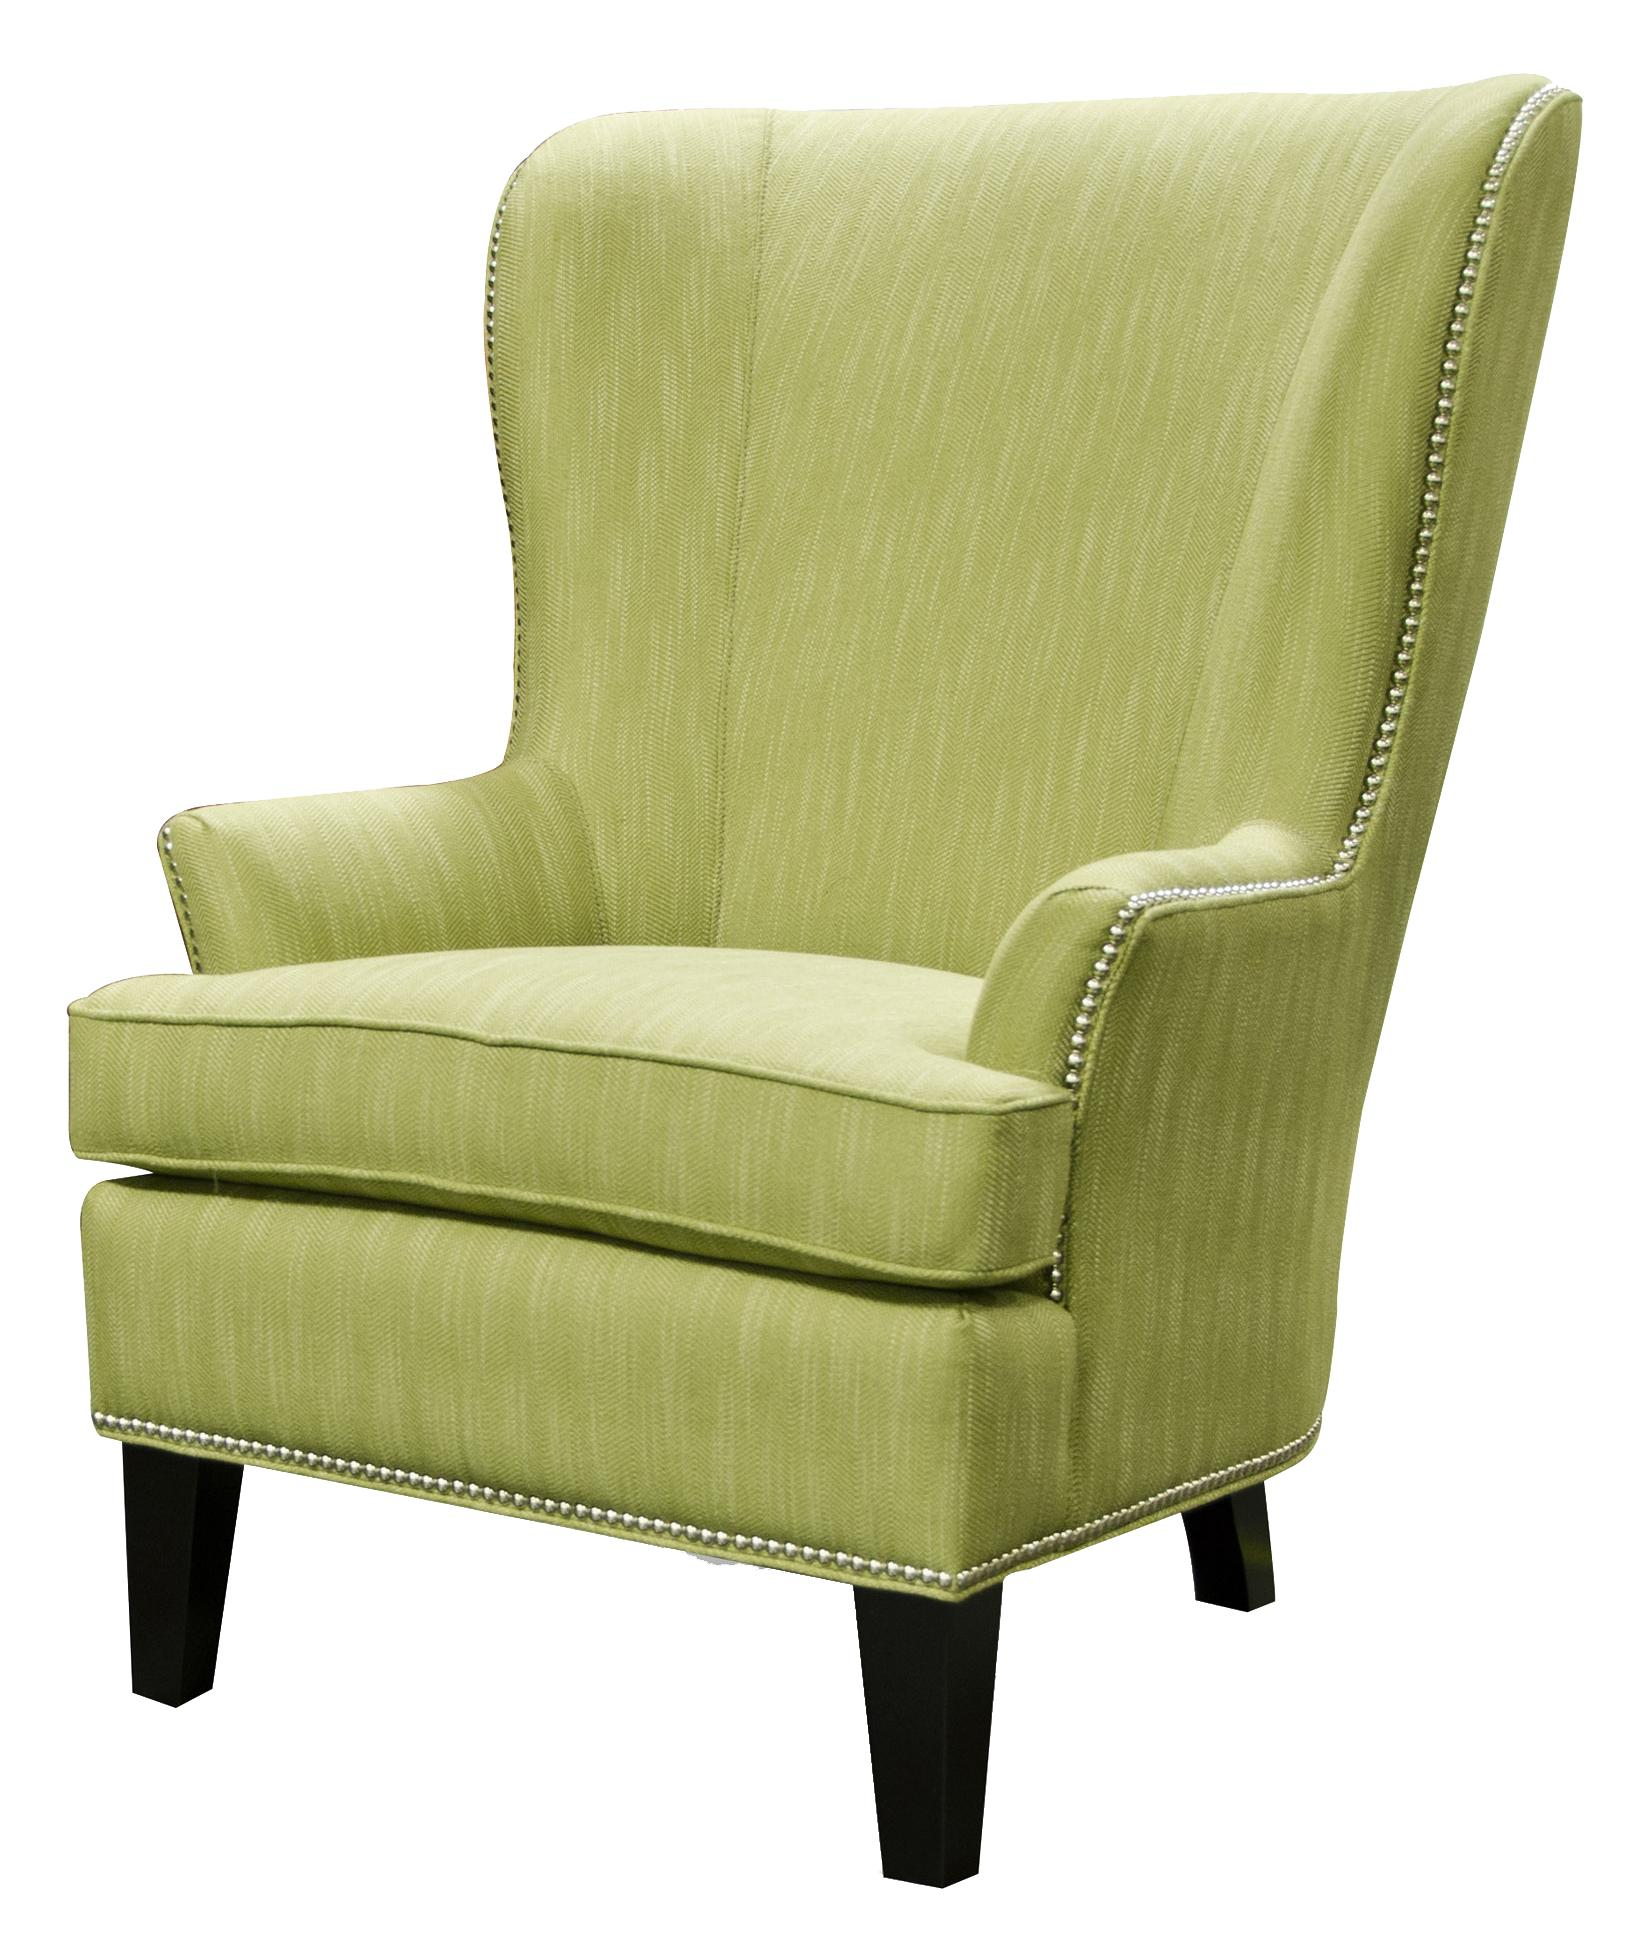 Saylor Wing Chair by England at H.L. Stephens